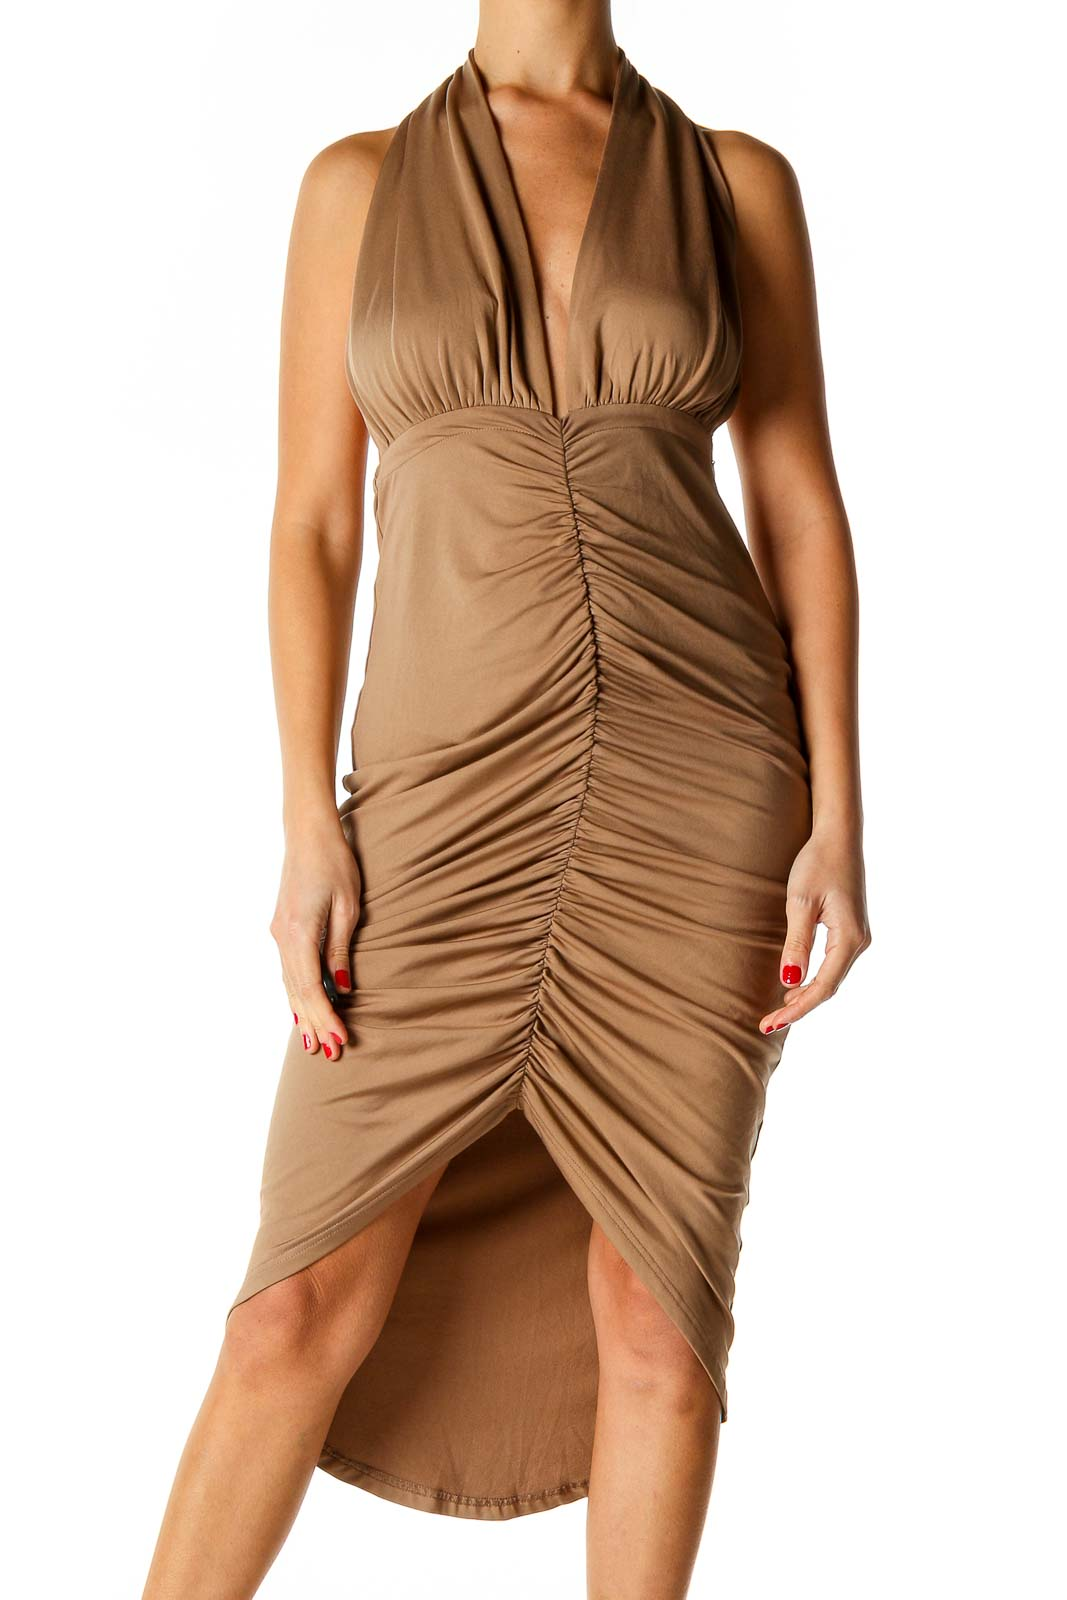 Brown Solid Retro Sheath Dress Front